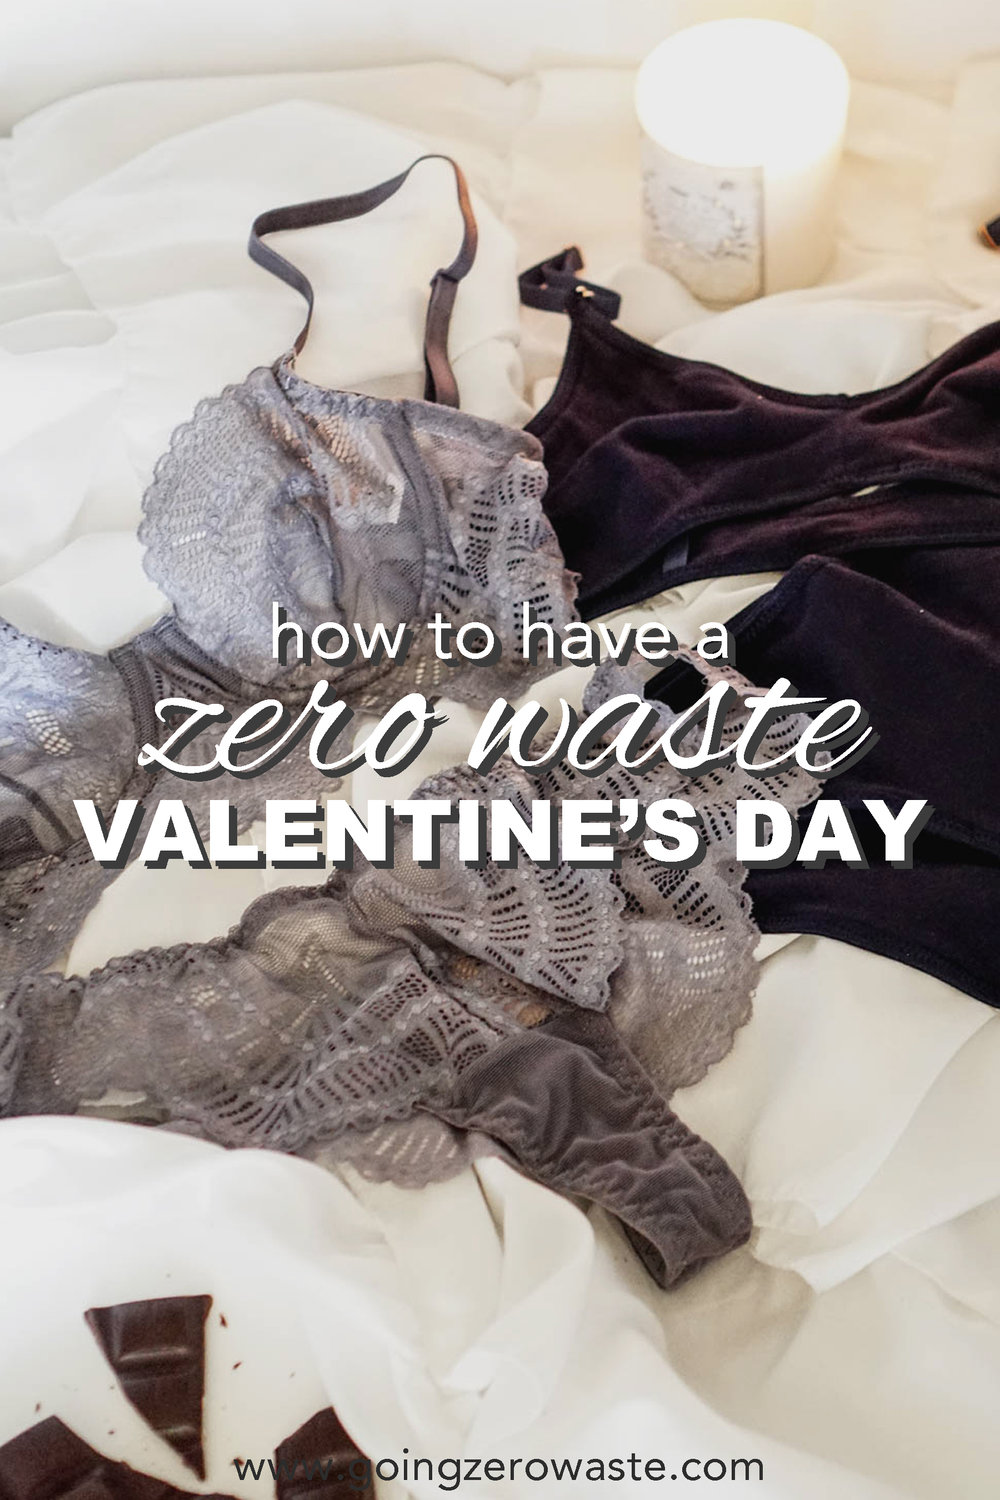 How to have a zero waste valentines day from www.goingzerowaste.com